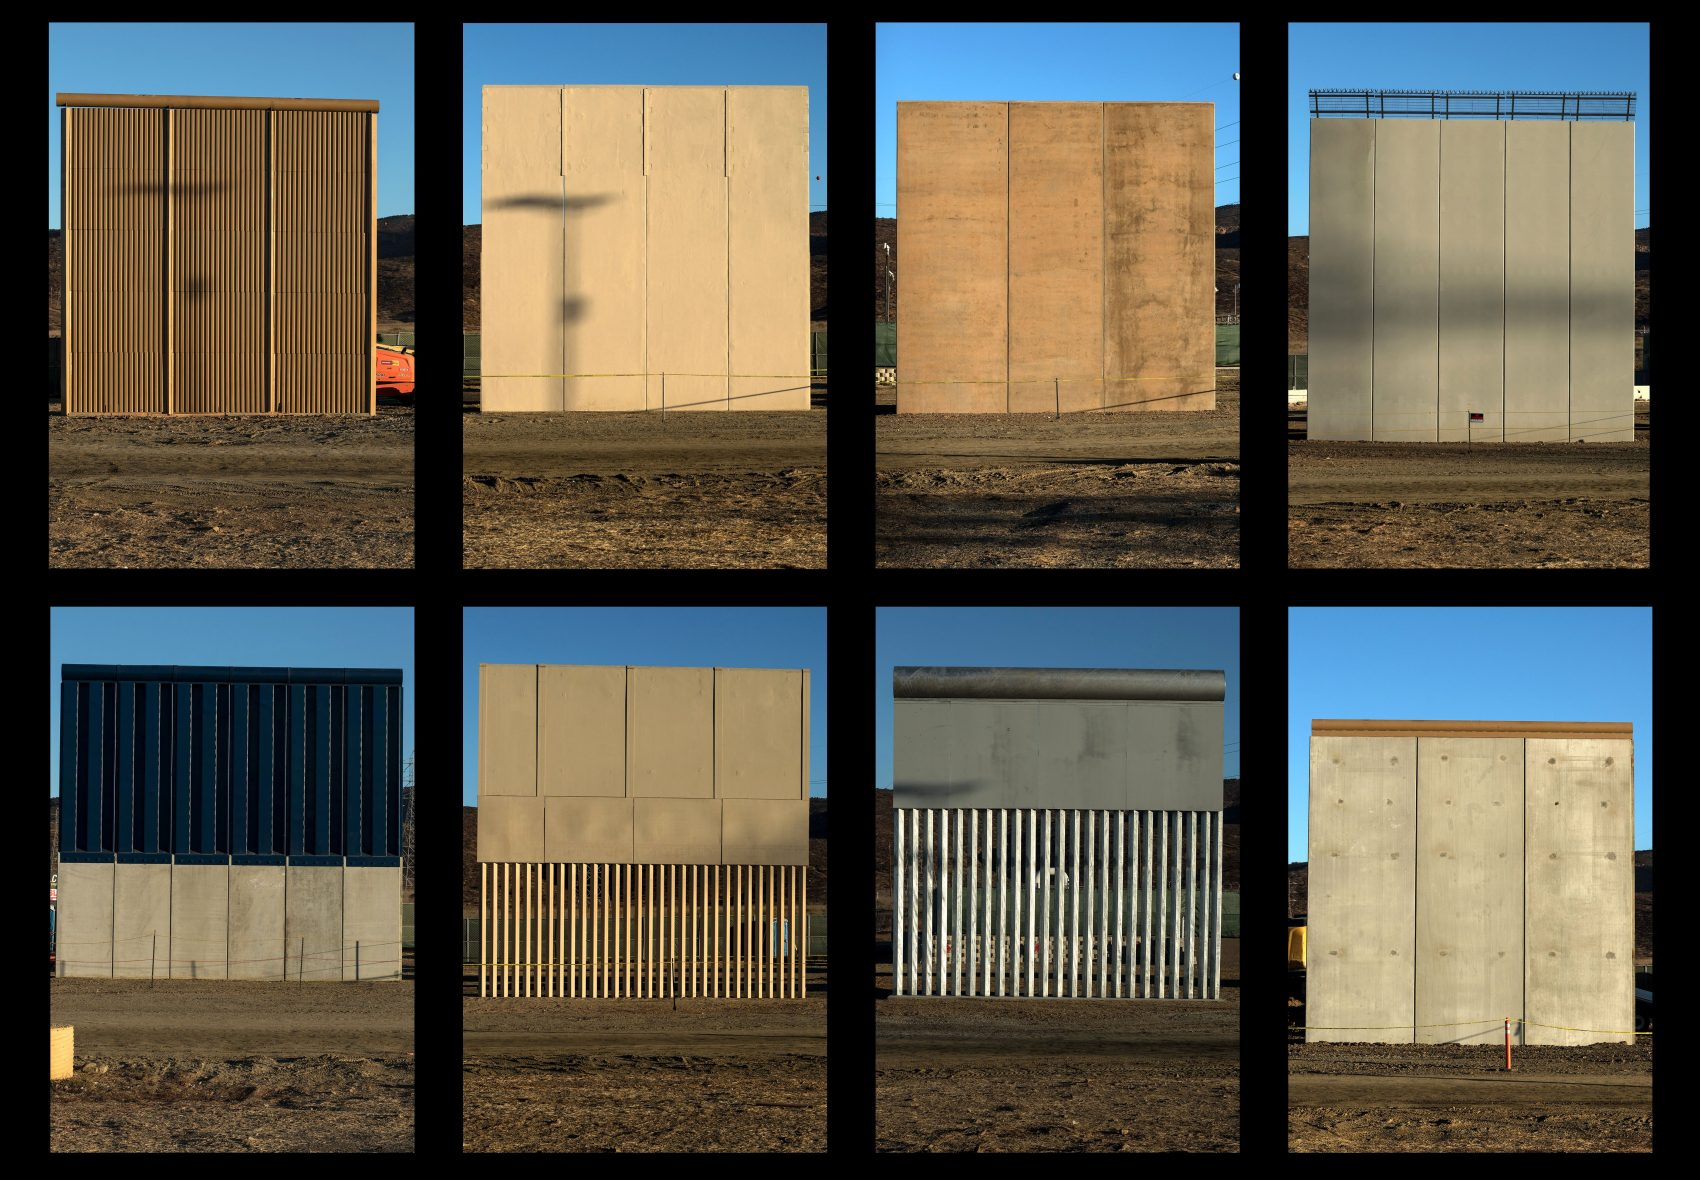 This combination of pictures shows the eight prototypes of President Trump's U.S.-Mexico border wall being built near San Diego, in the U.S., seen from across the border from Tijuana, Mexico, on Oct. 22, 2017. (Guillermo Arias/AFP/Getty Images)